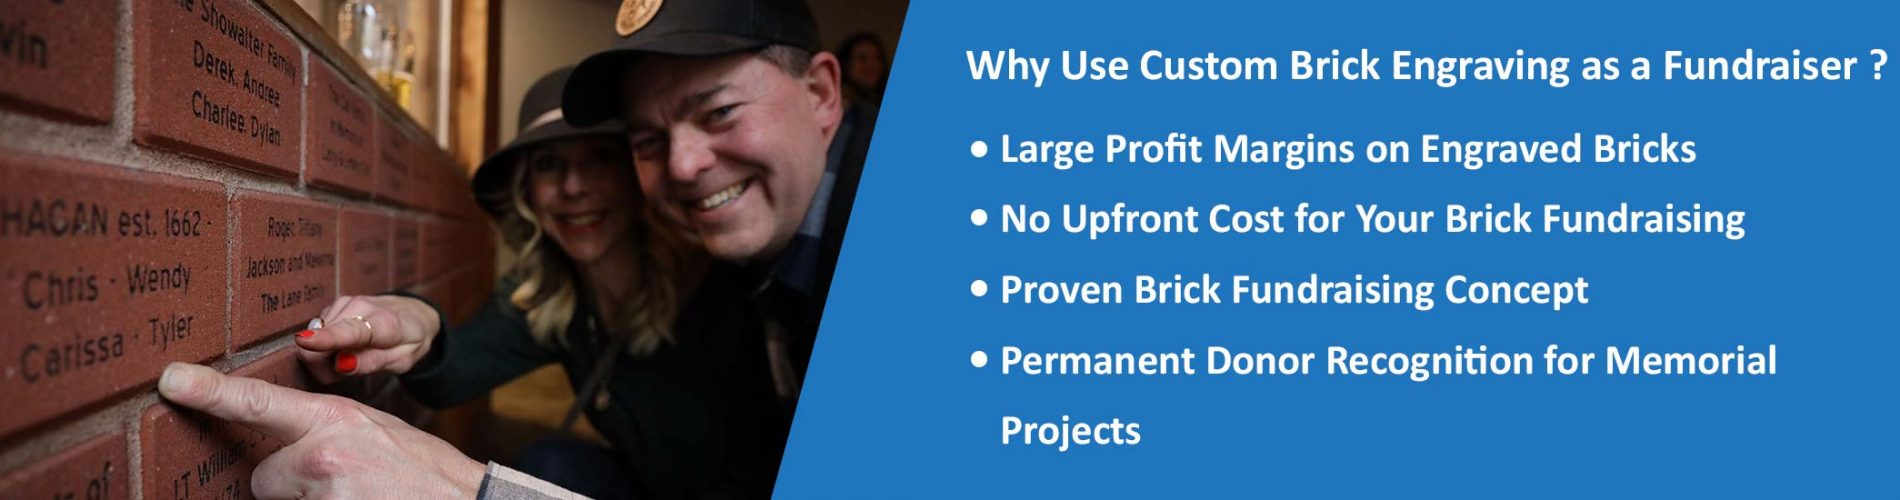 Large Profit Margins on Engraved Bricks No Upfront Cost for Your Brick Fundraising Proven Brick Fundraising Concept Permanent Donor Recognition for Memorial Projects